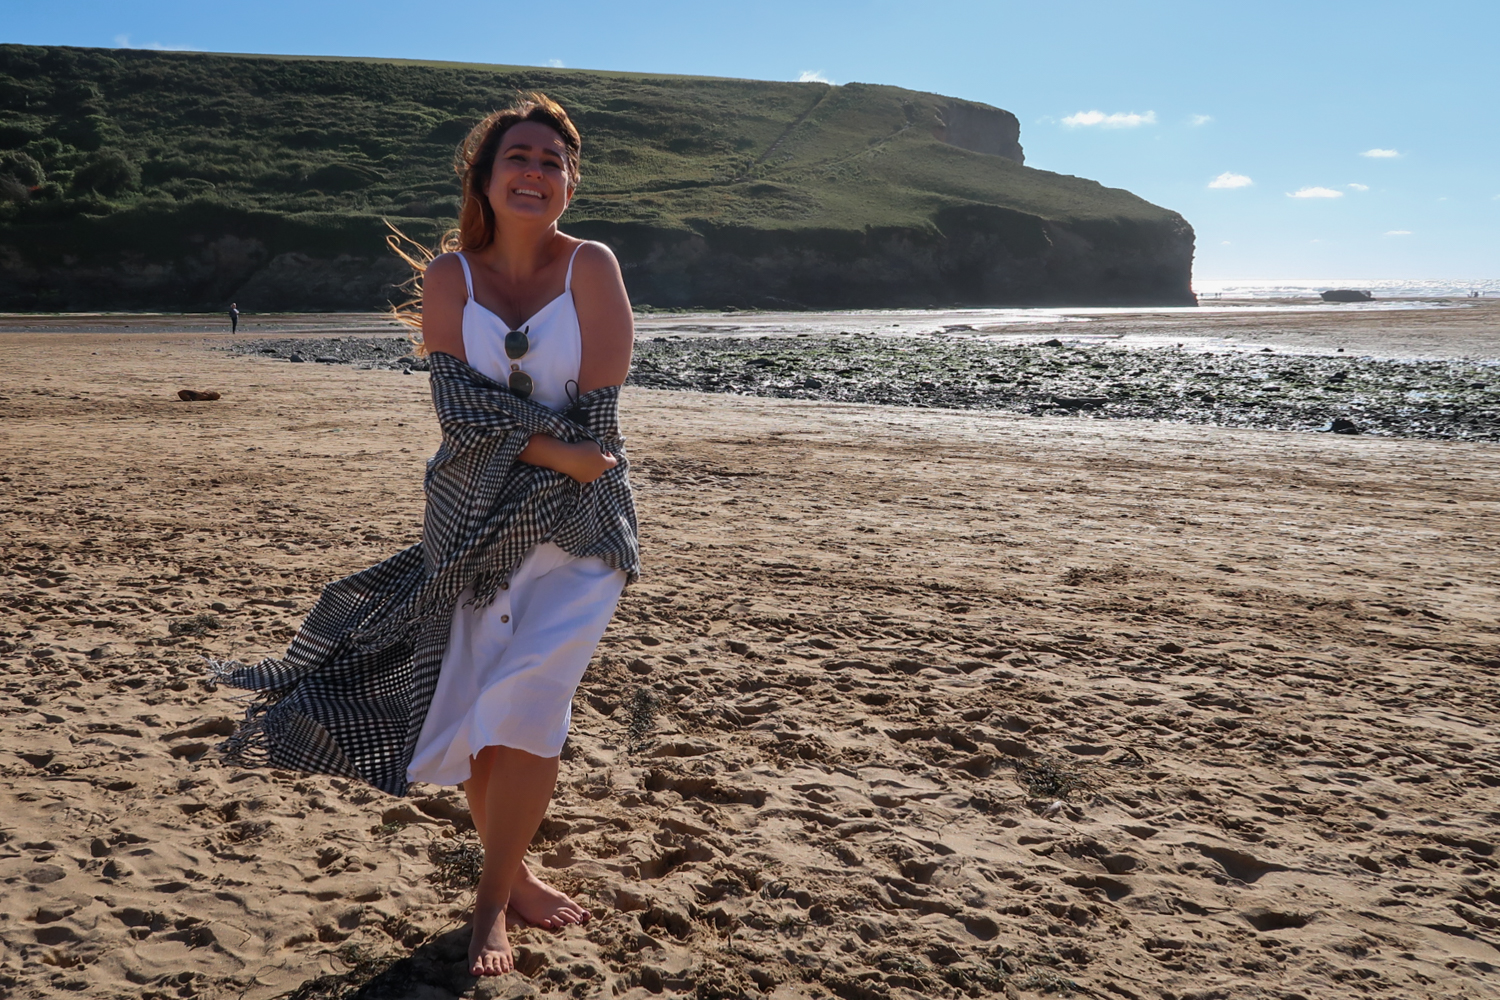 woman in white summer dress and checked wrap standing on beach in the sunshine smiling